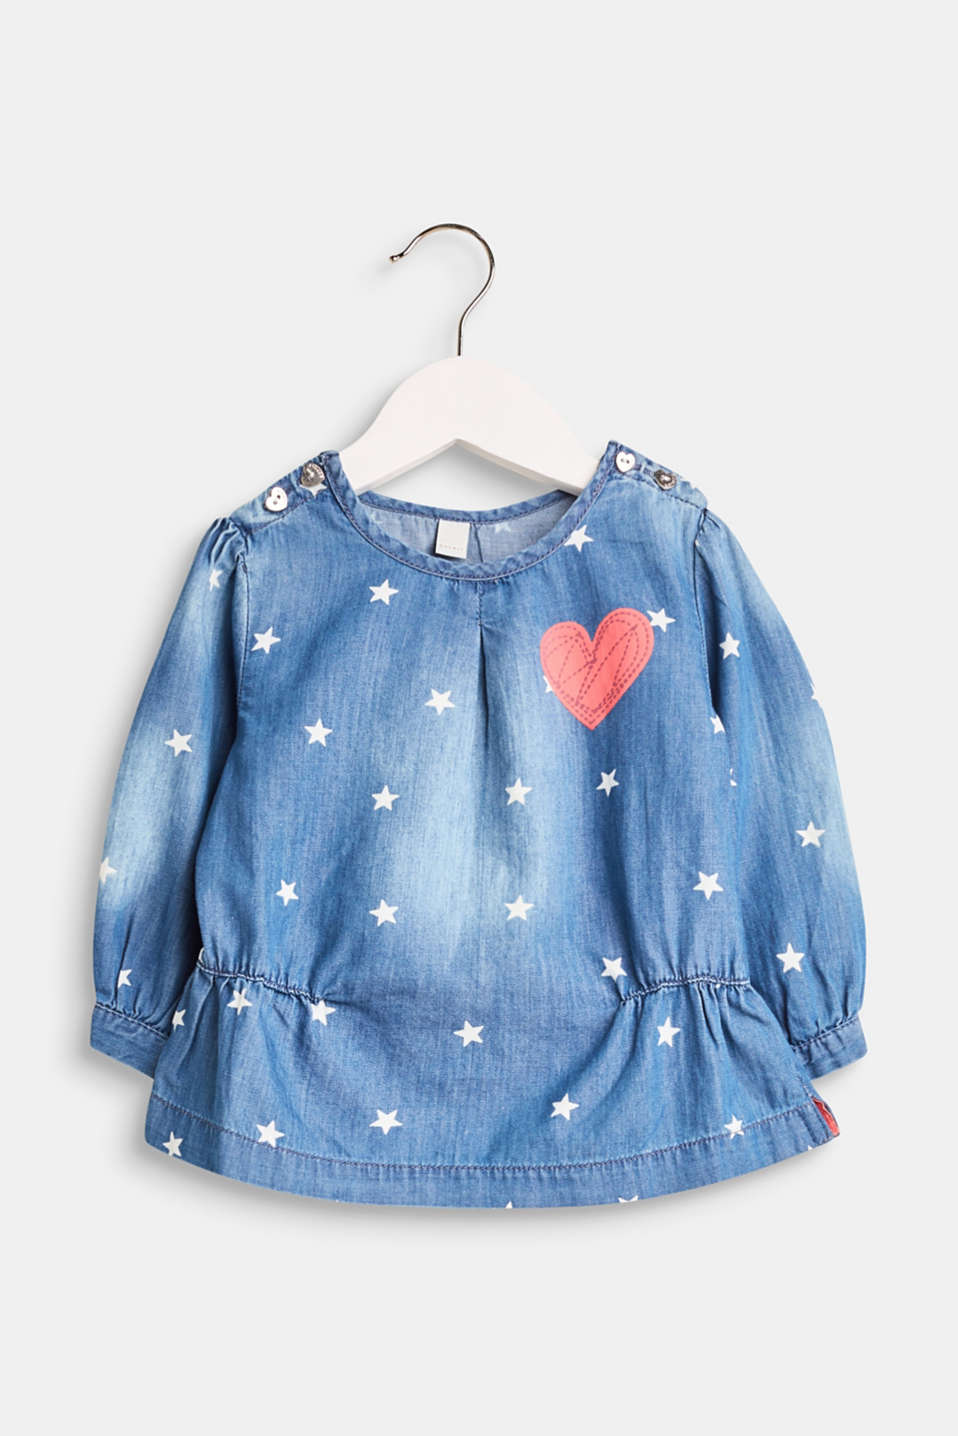 Esprit - Denim blouse with a star print, 100% cotton